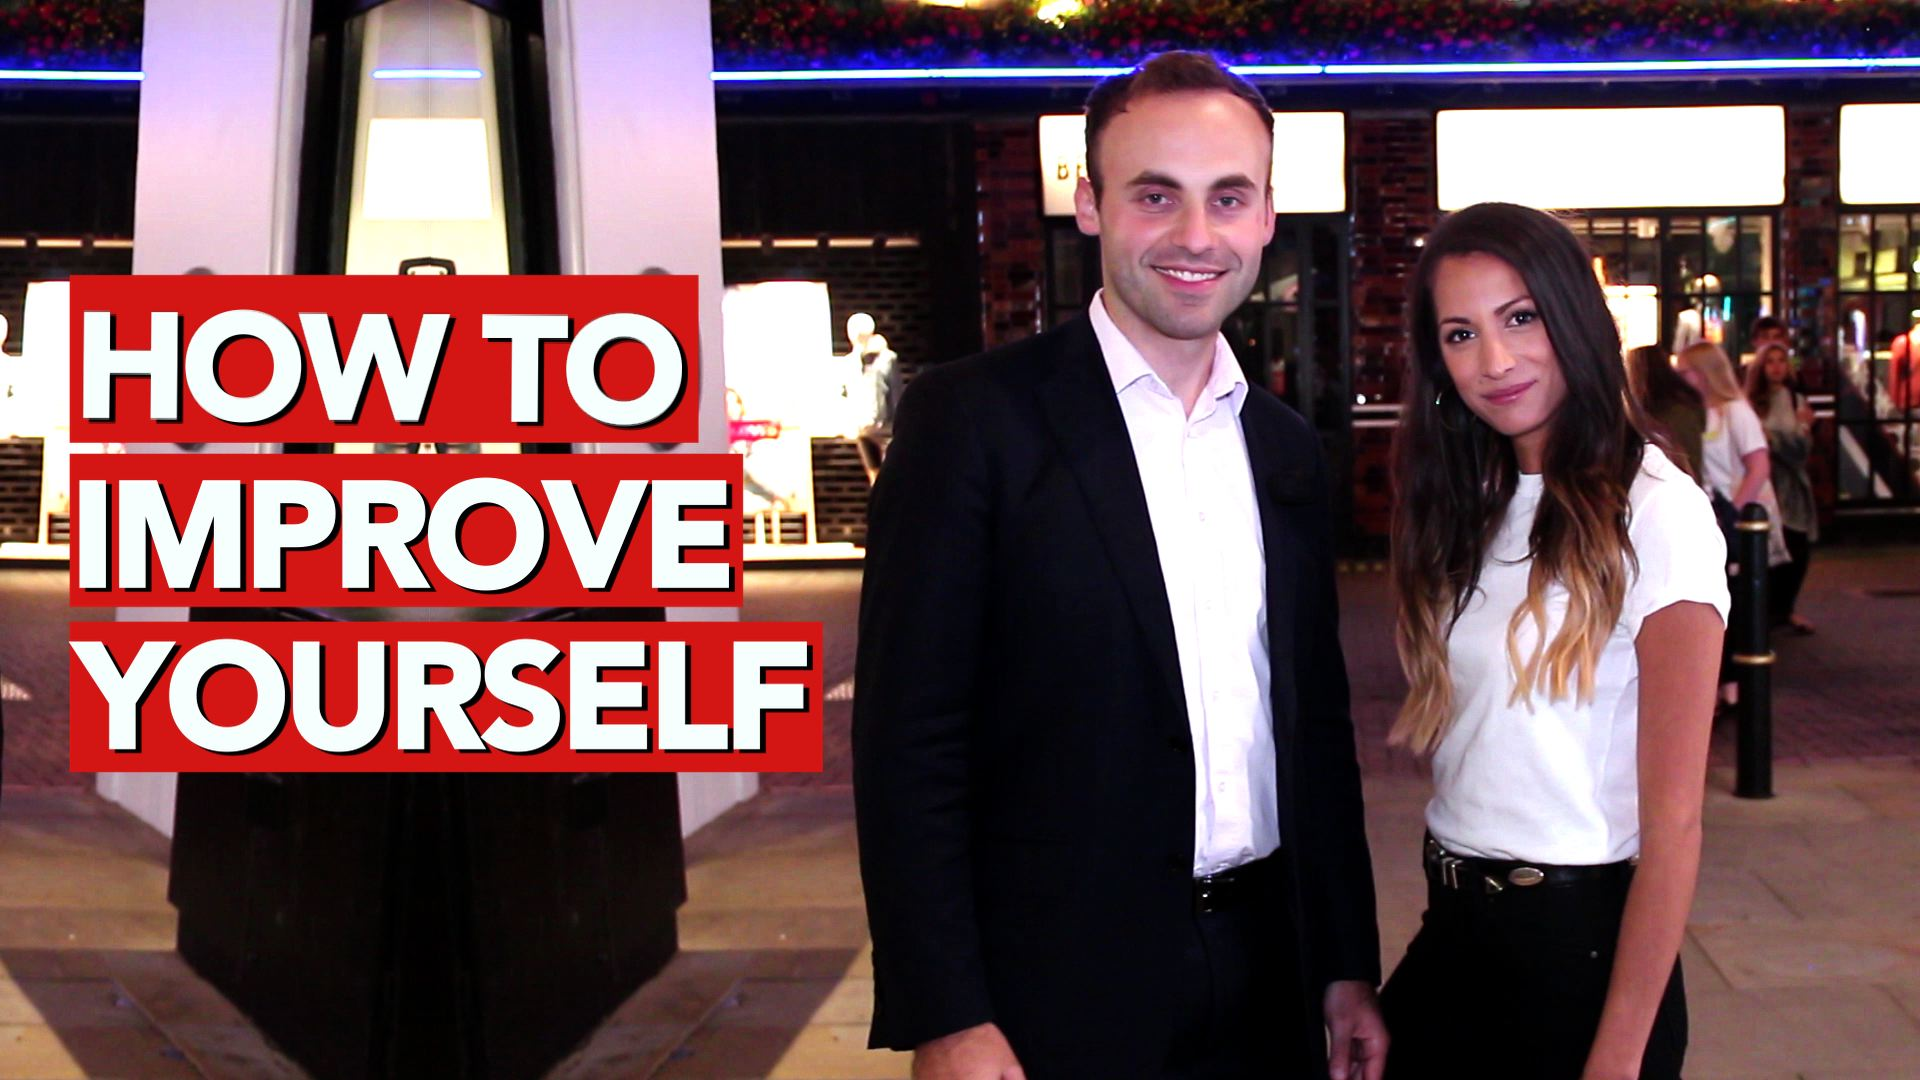 How to improve yourself in dating